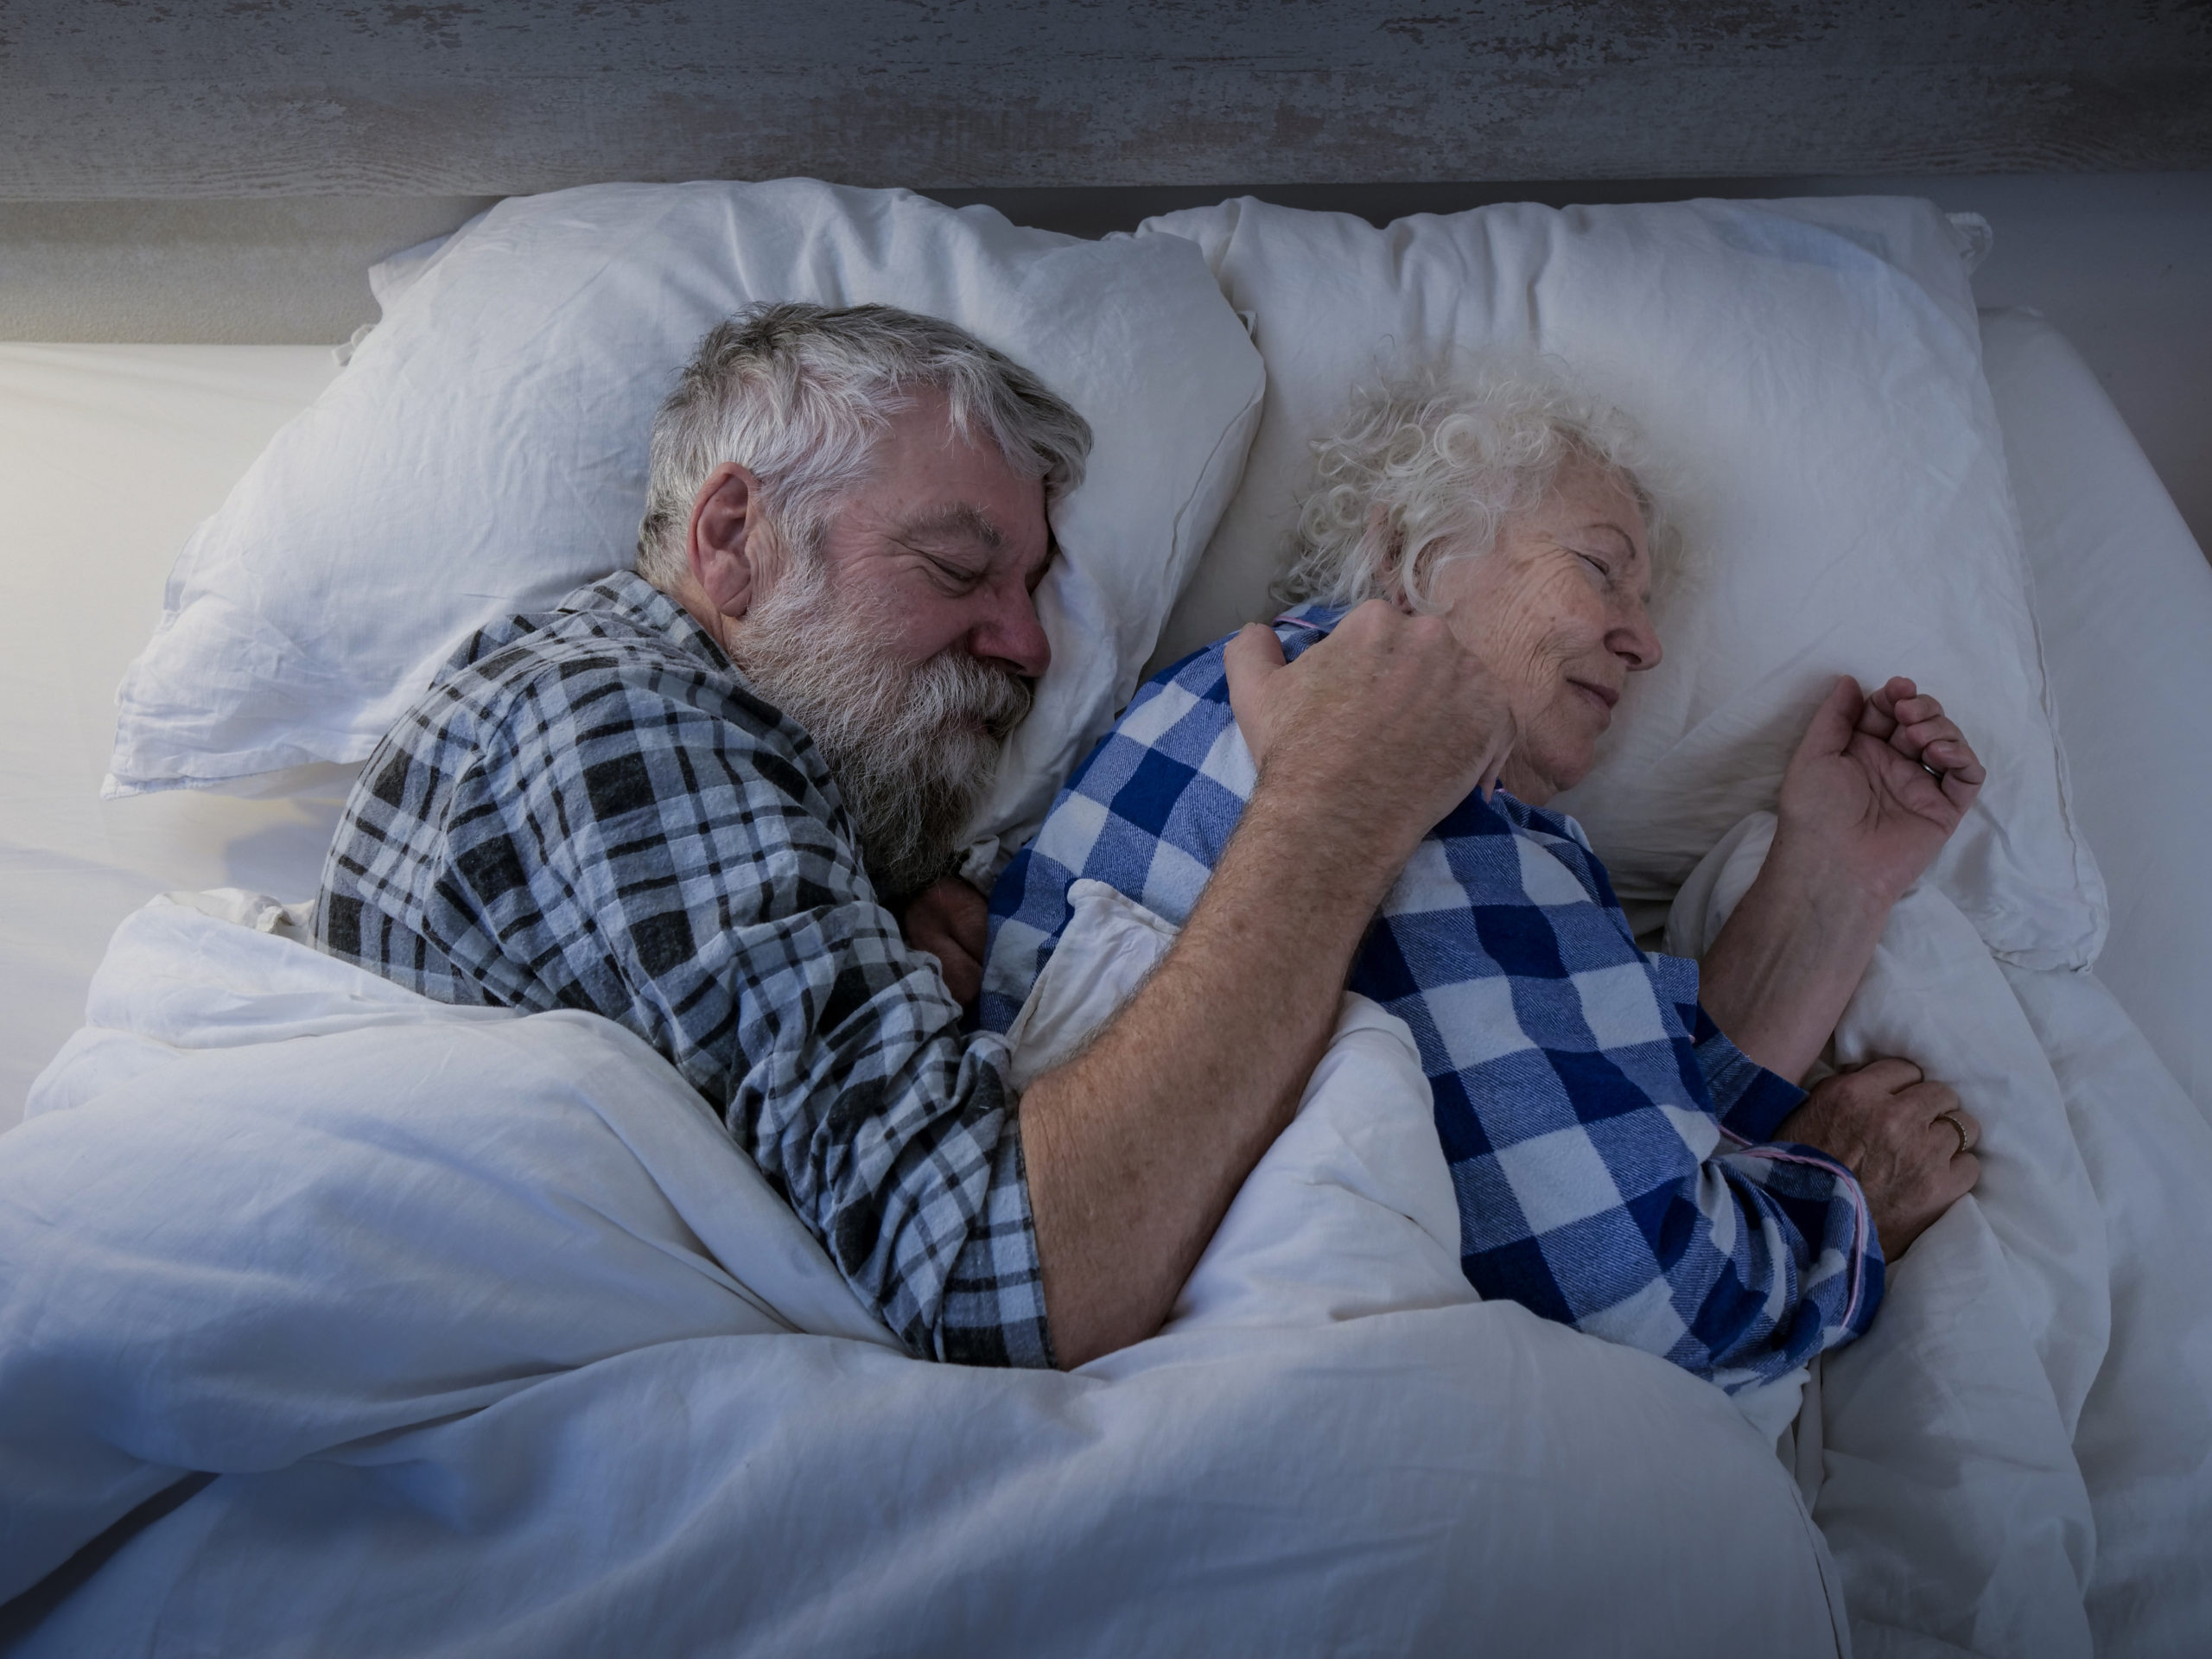 older couple sleeping together in plaid shirts on comfy bed